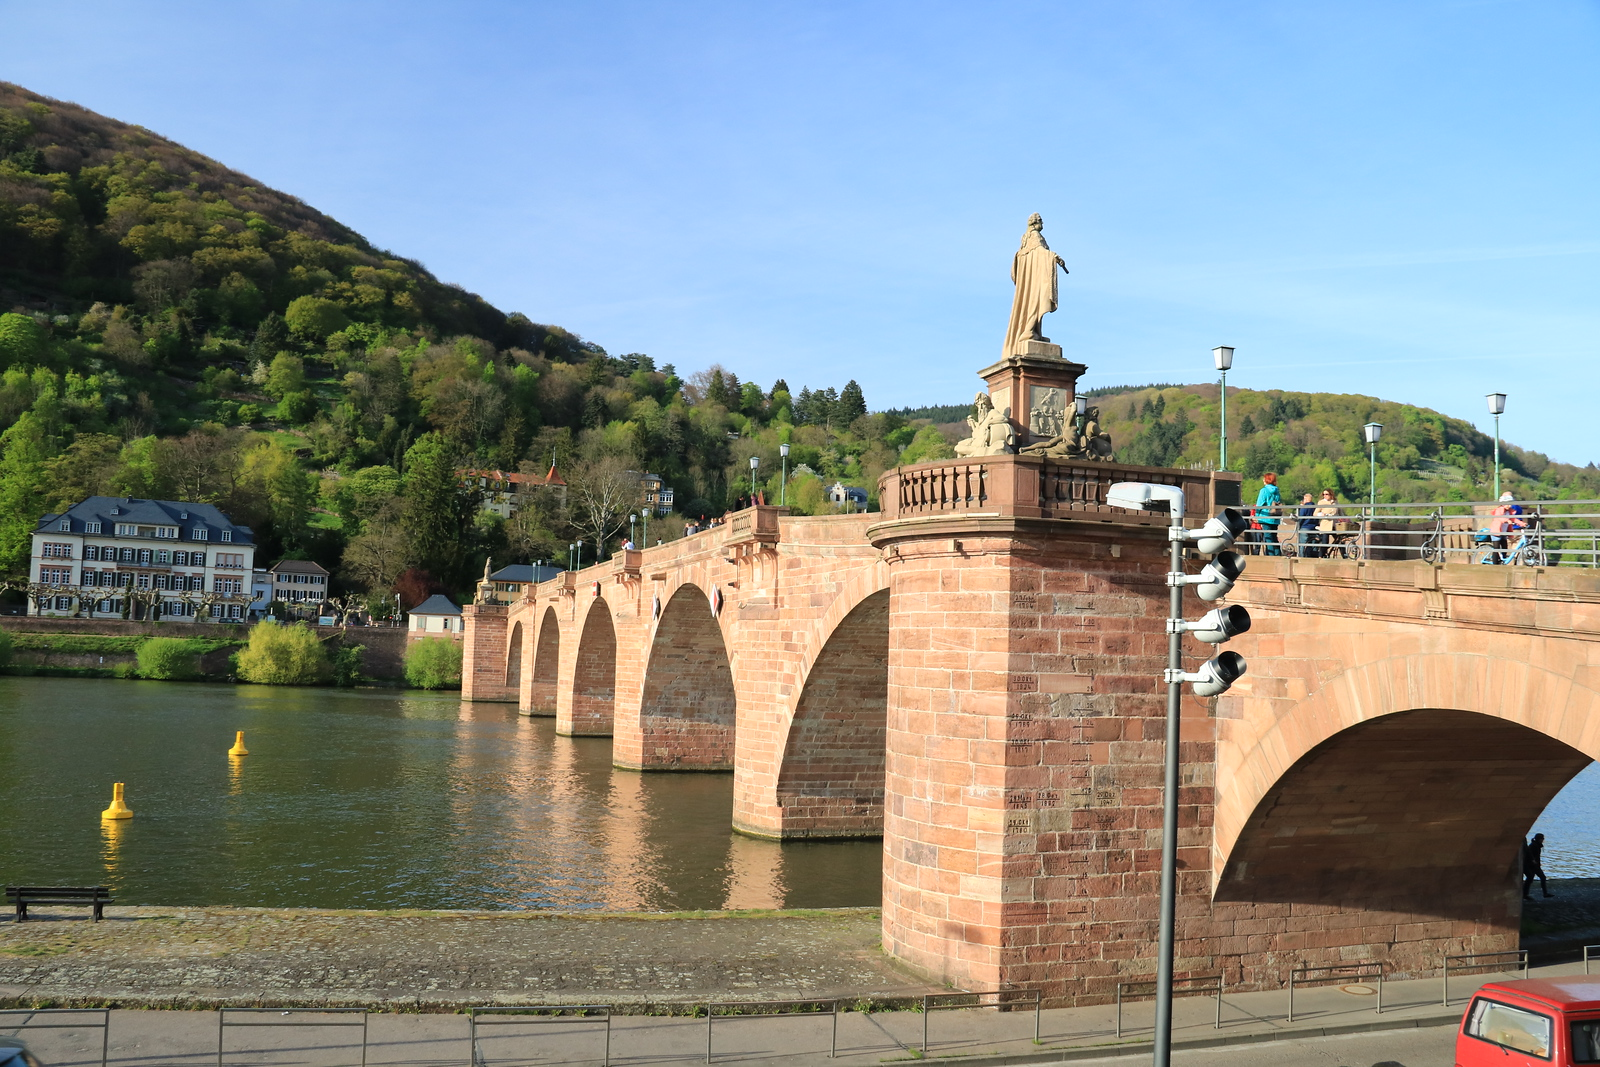 The Alte Brucke or Old Bridge dates to 1786-88.  It provides great views of this beautiful city.